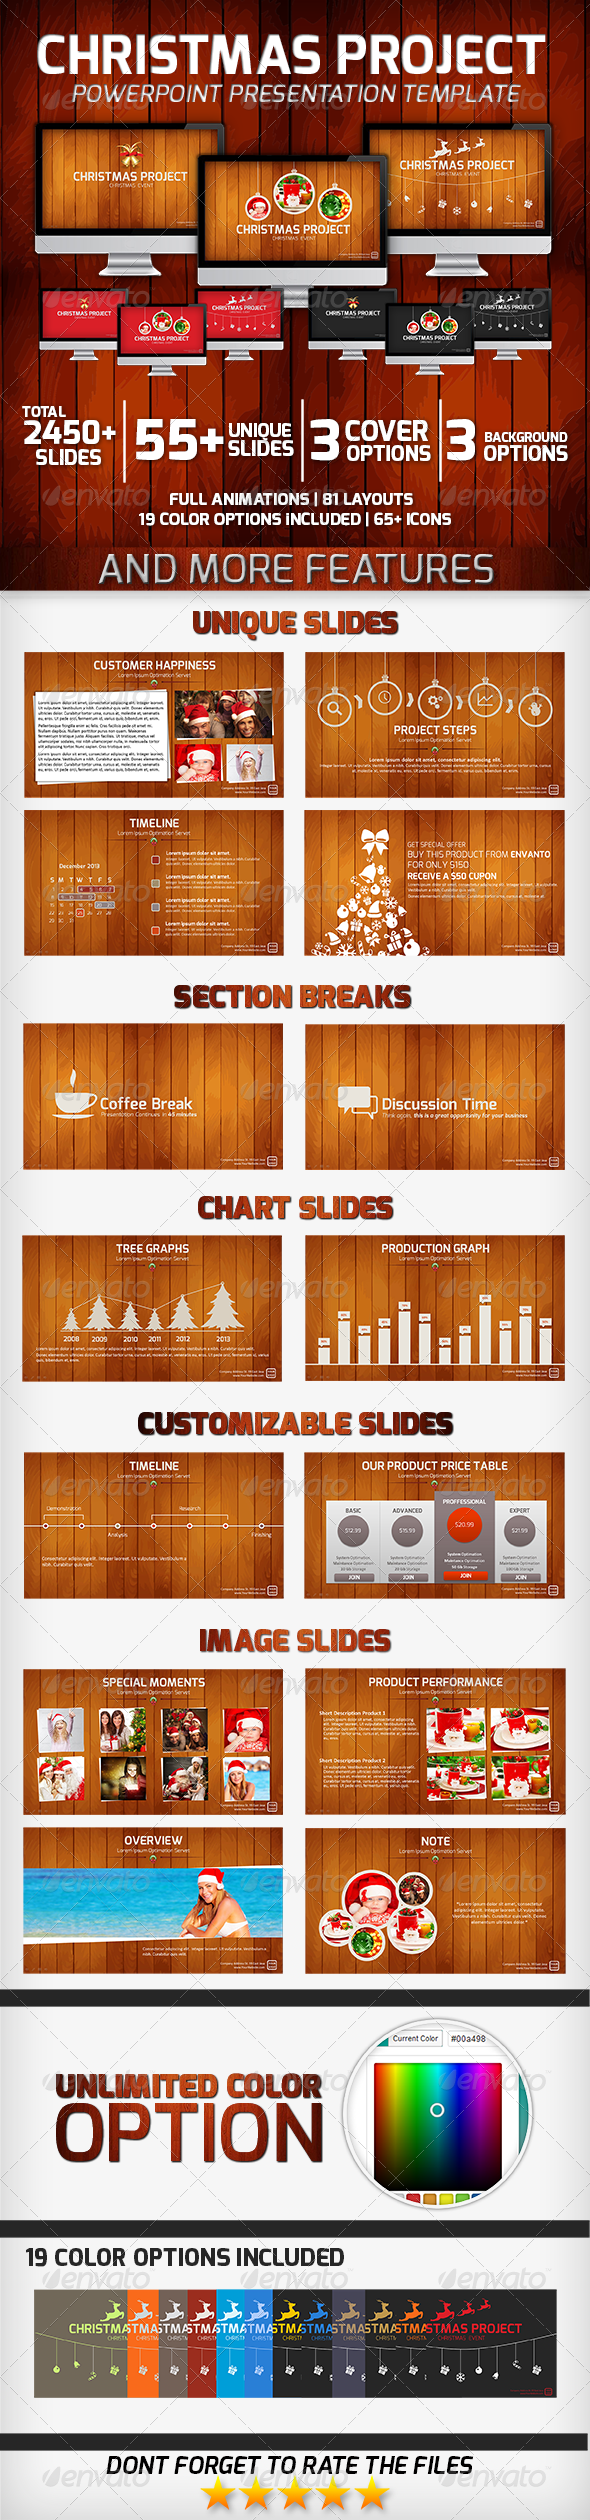 Christmas Project PowerPoint Presentation Template - Business PowerPoint Templates